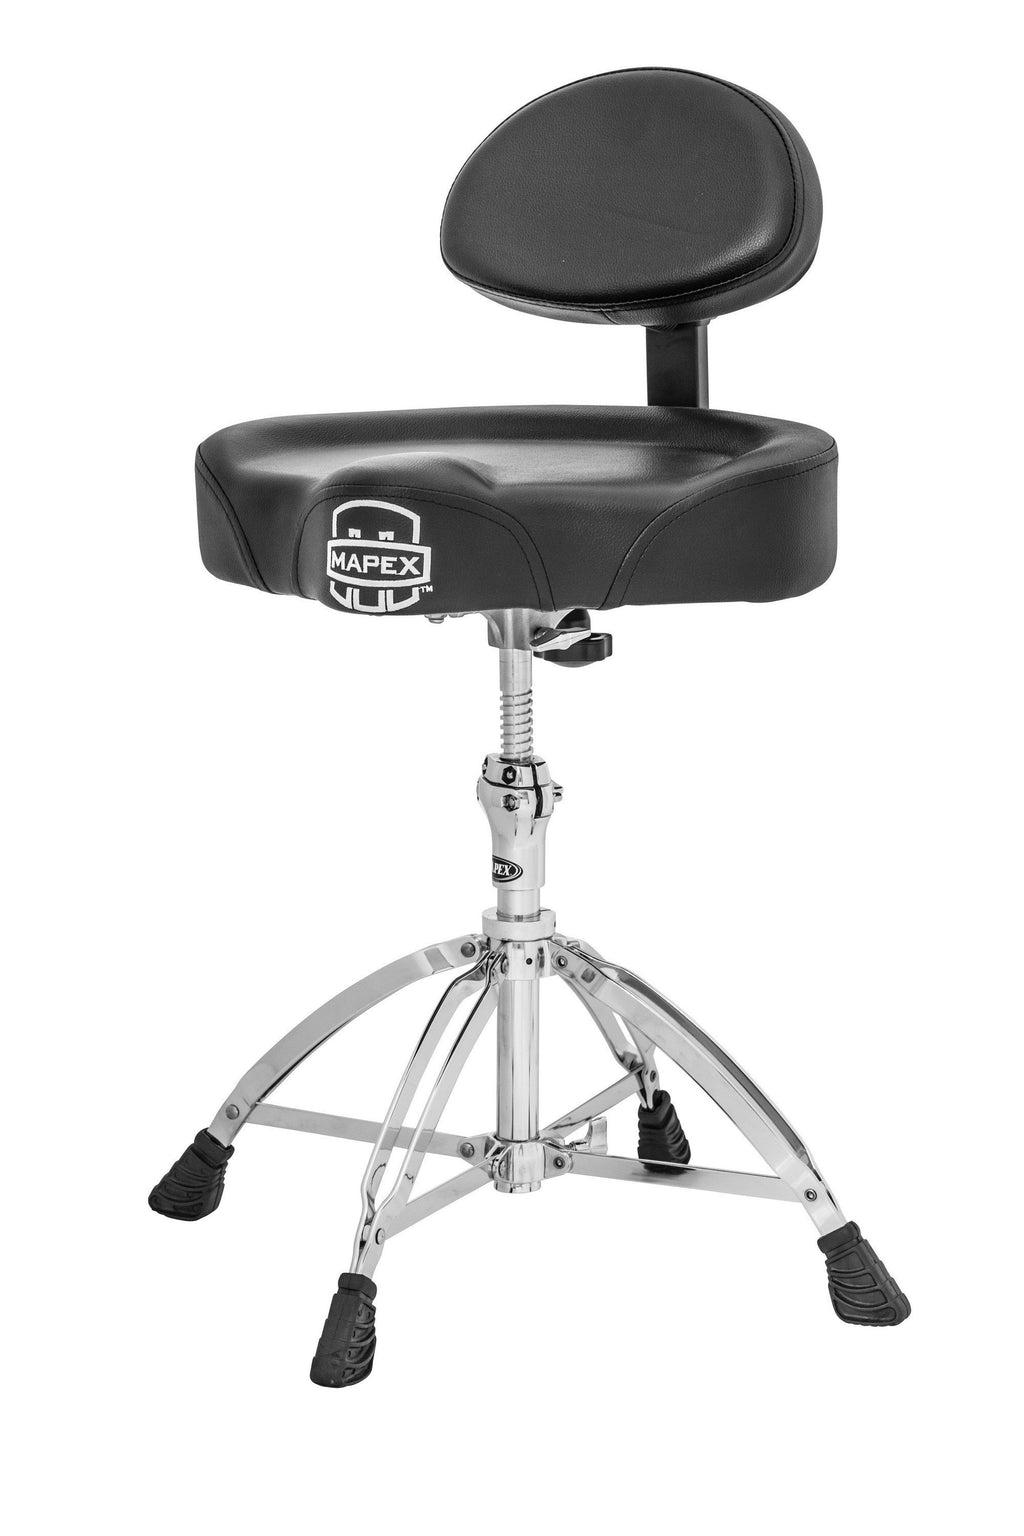 Mapex T775 Saddle Top Drum Thronew/Back Rest And 4 Legs